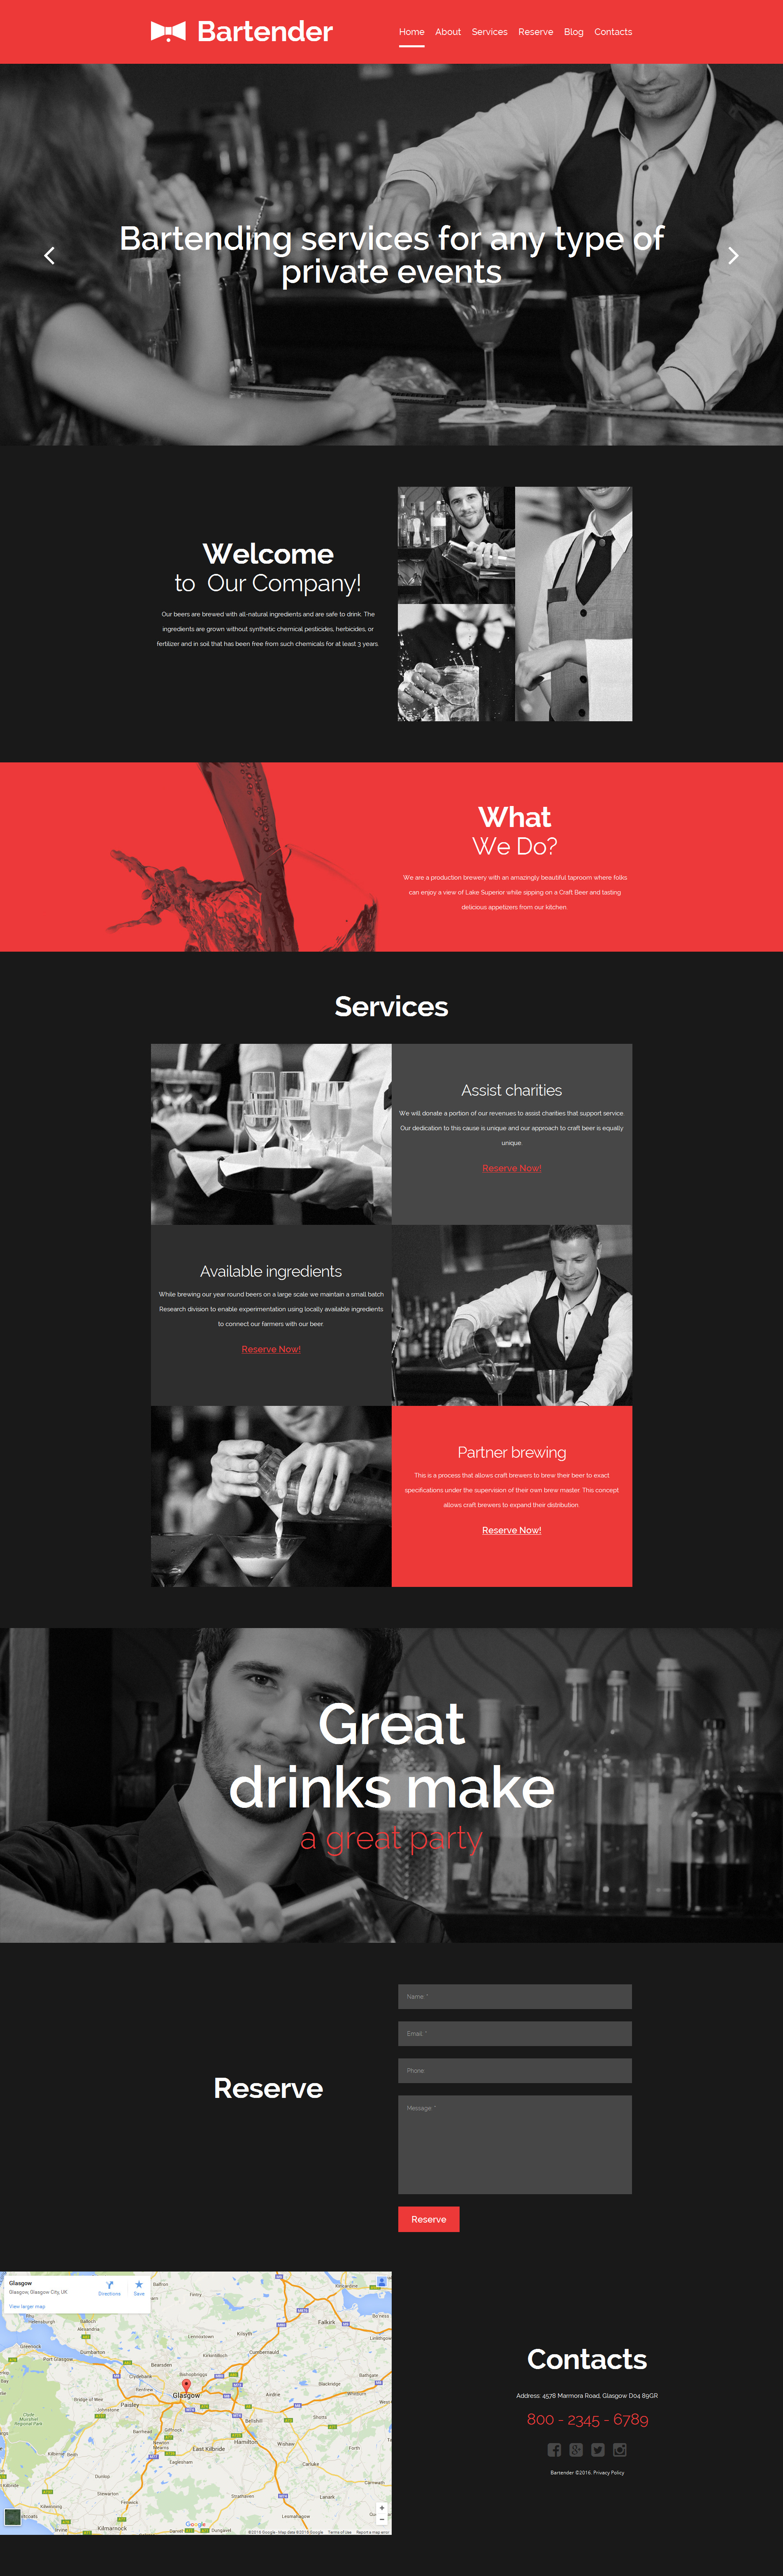 Catering Services Moto CMS 3 Template